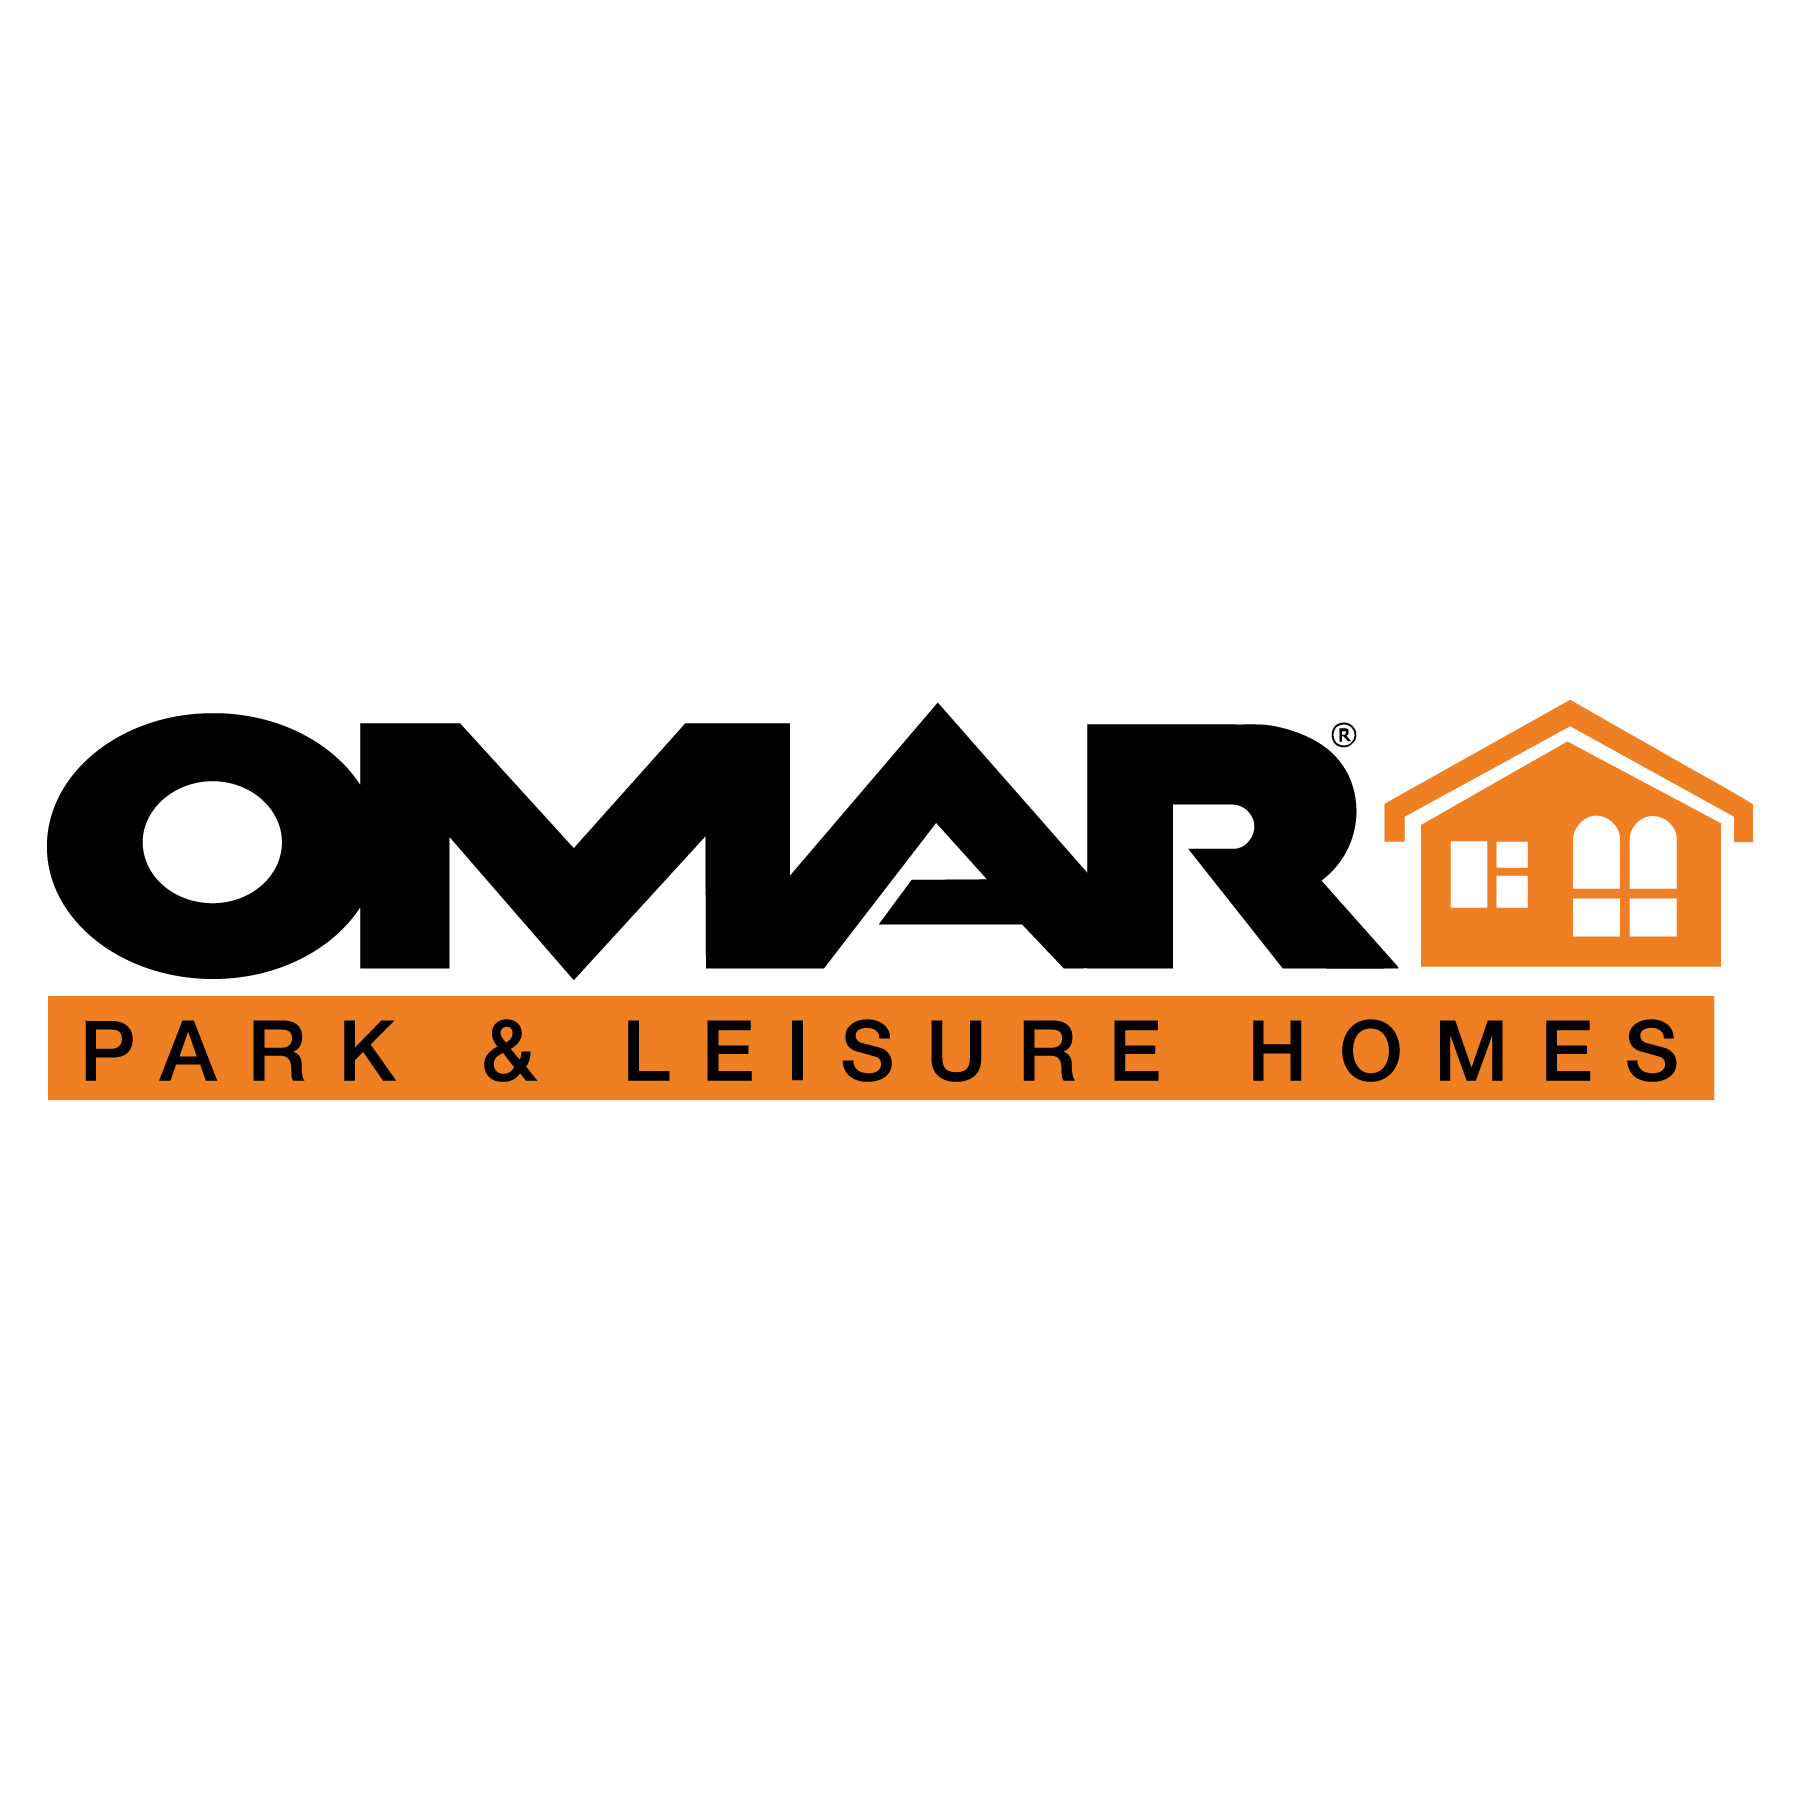 Omar Park and Leisure Homes